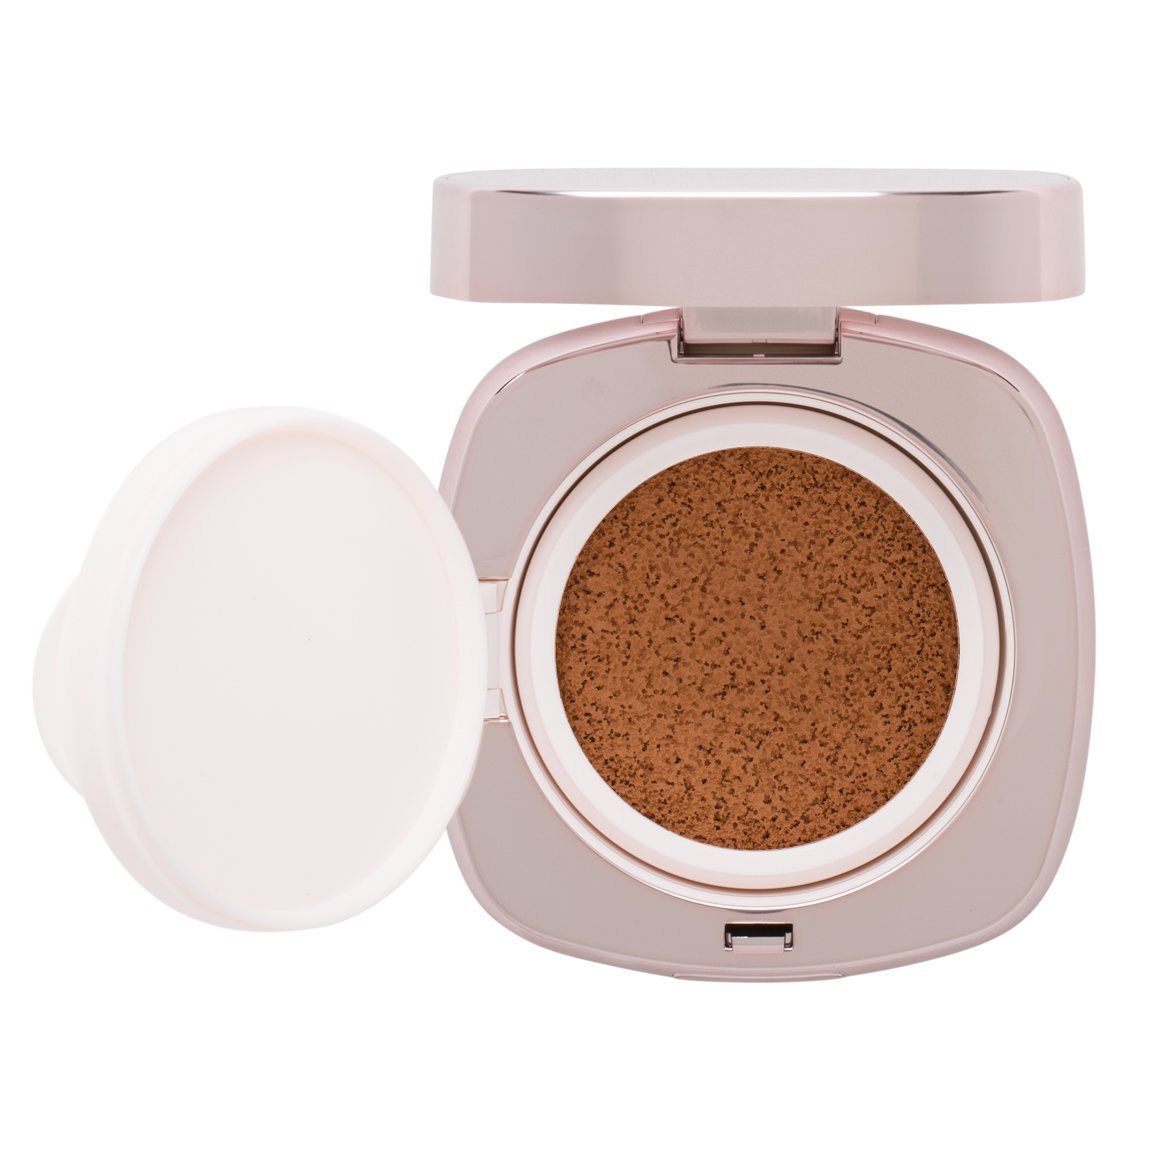 La Mer The Luminous Lifting Cushion Compact Broad Spectrum SPF 20 Beige Nude alternative view 1.